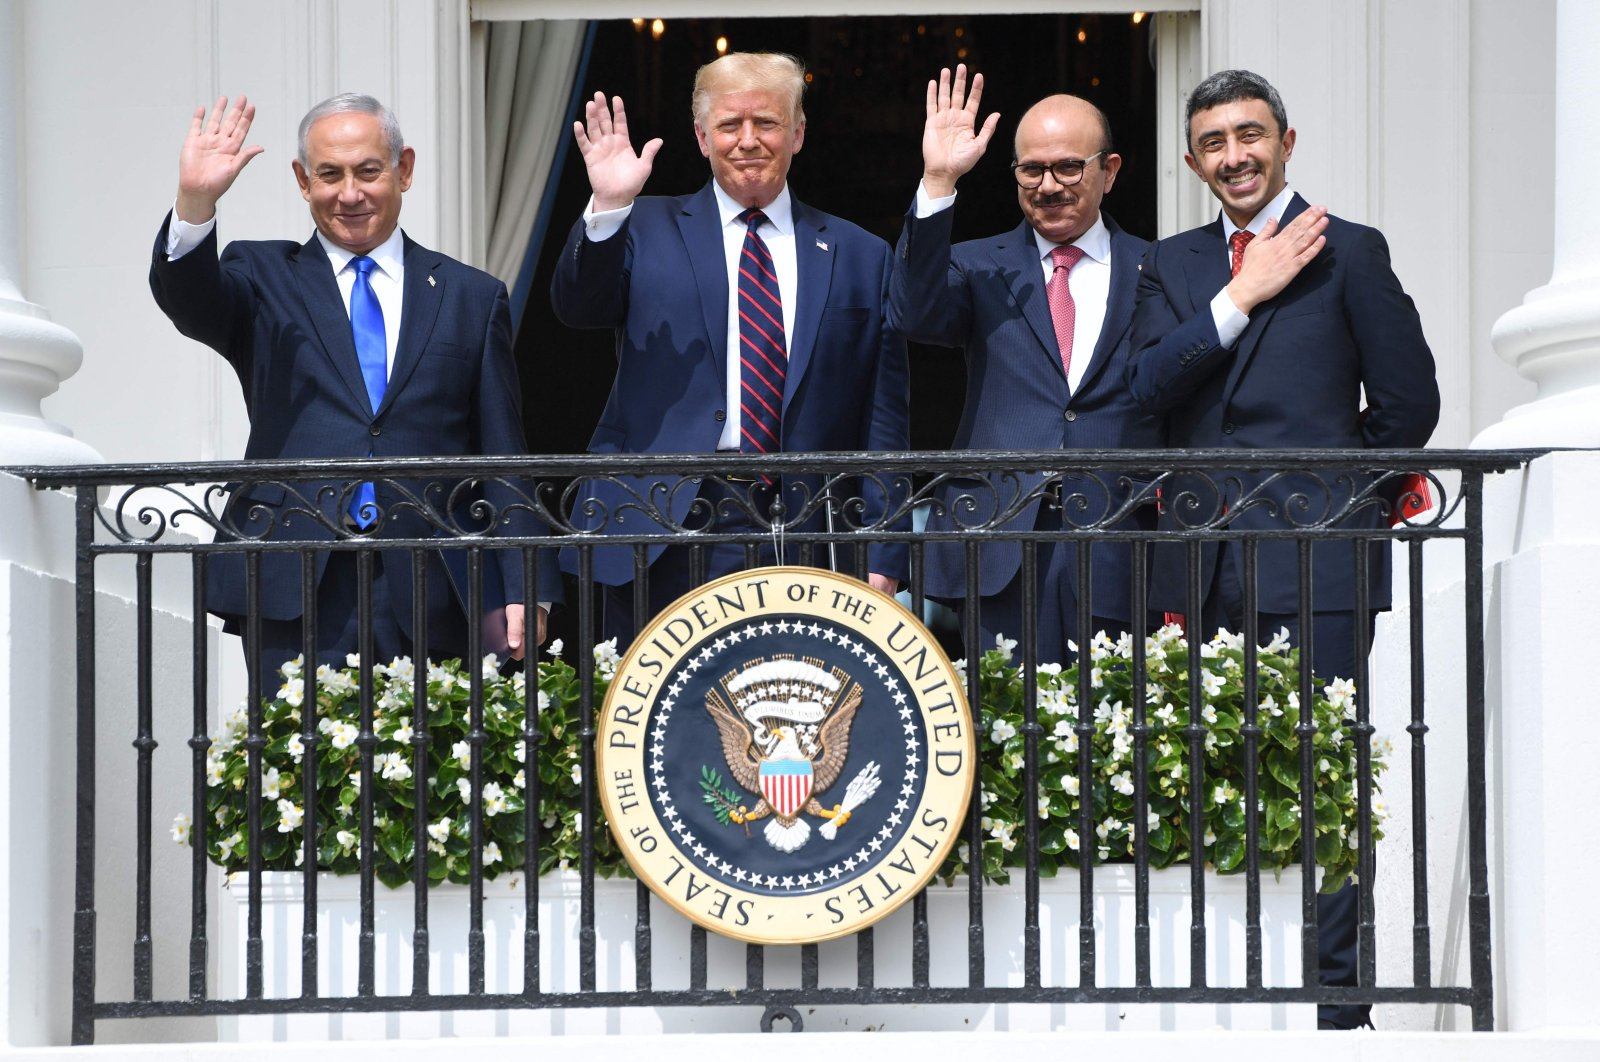 (L-R) Israeli Prime Minister Benjamin Netanyahu, US President Donald Trump, Bahrain Foreign Minister Abdullatif Al-Zayani and UAE Foreign Minister  Sheikh Abdullah bin Zayed bin Sultan Al Nahyan wave from the Truman Balcony at the White House after they participated in the signing of the Abraham Accords in Washington, D.C., U.S., Sept. 15, 2020. (AFP Photo)